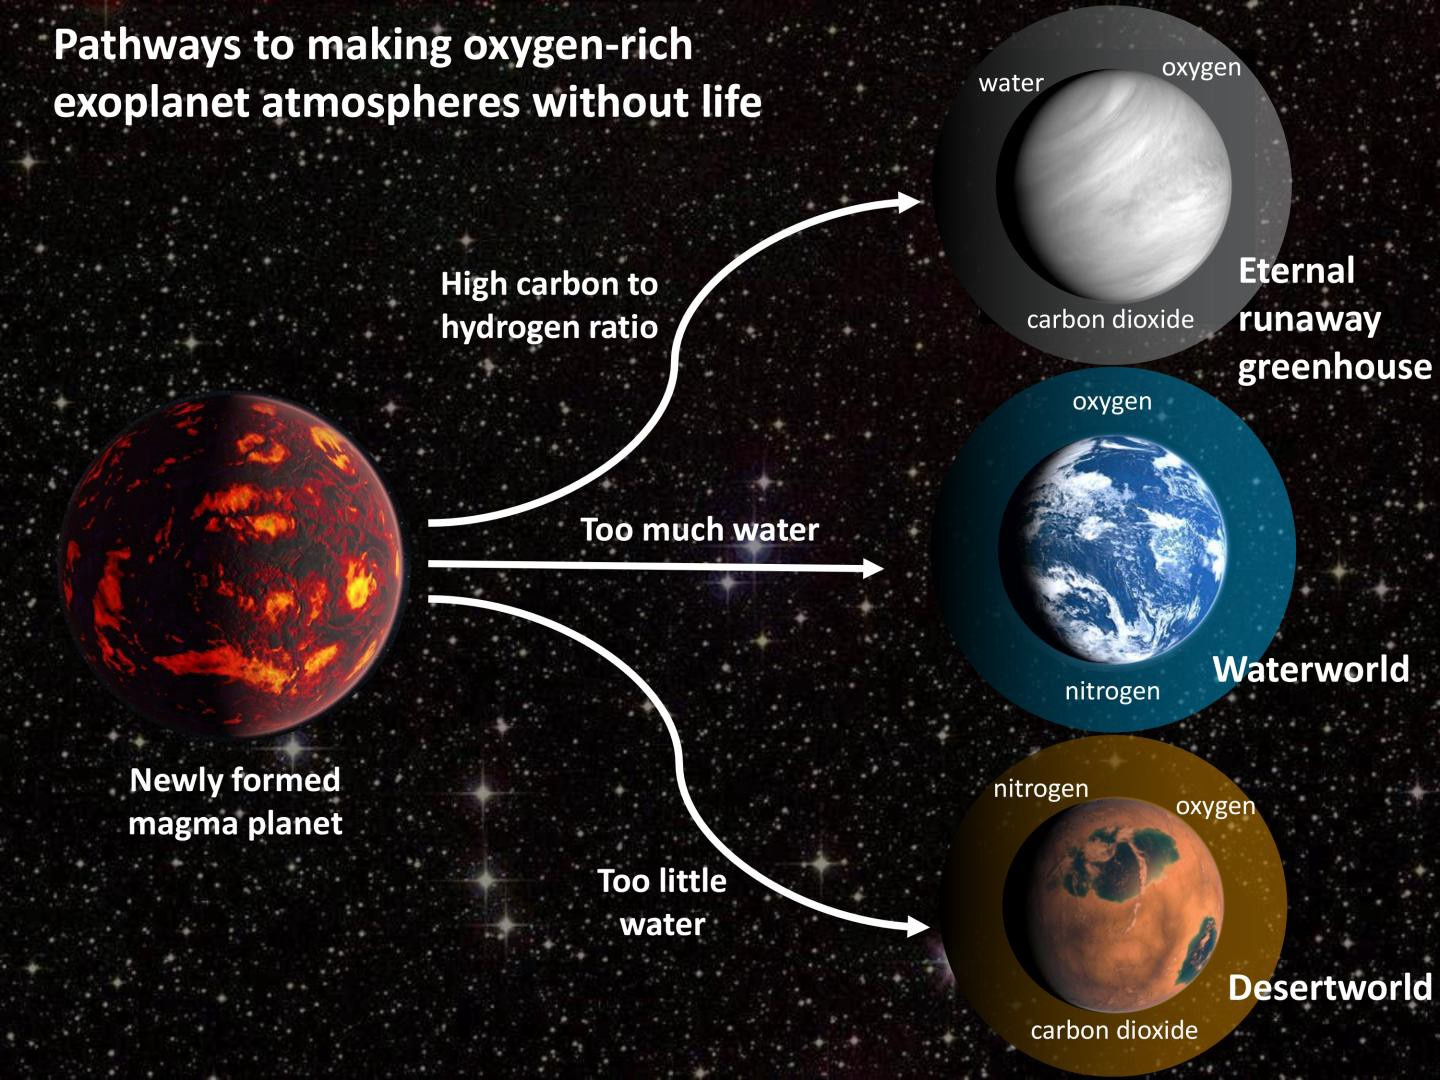 Yes, exoplanets can have oxygen without alien life